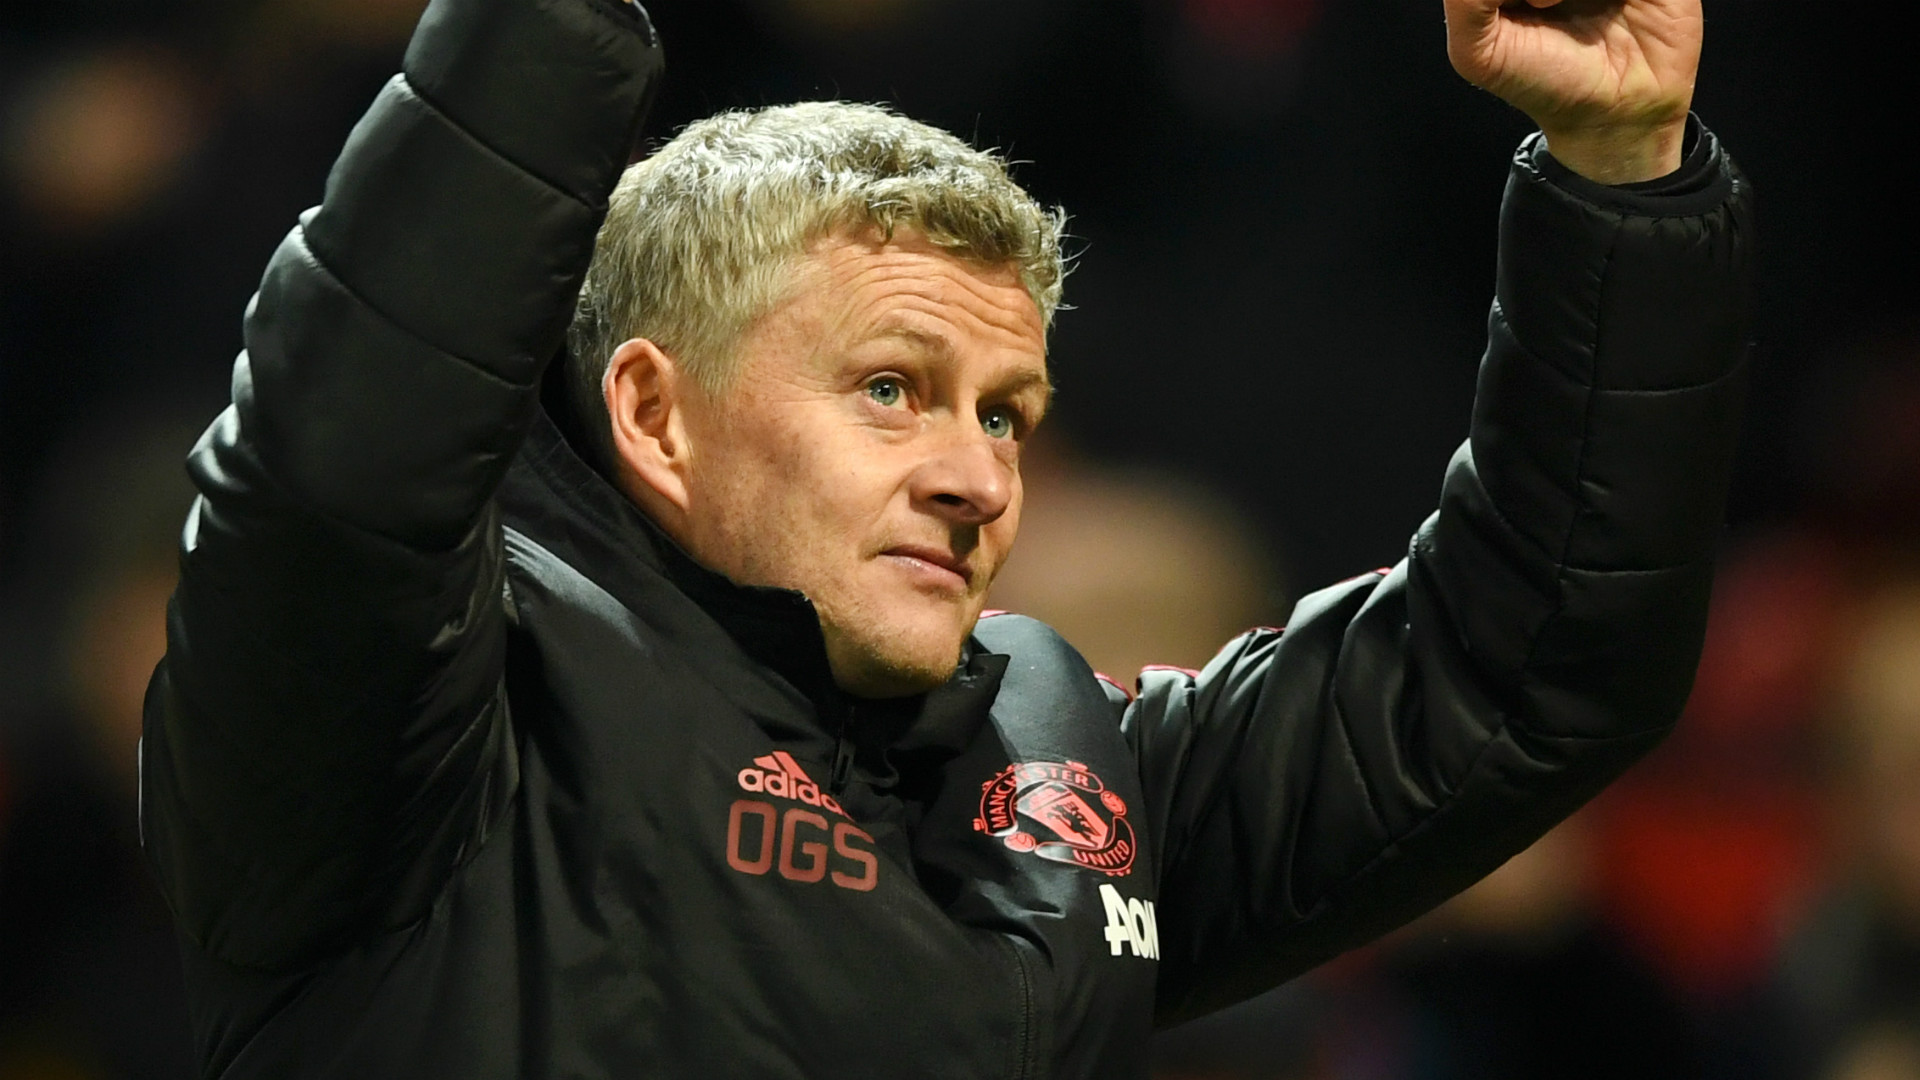 Graeme Souness gives verdict on Ole Gunnar Solskjaer at Man United